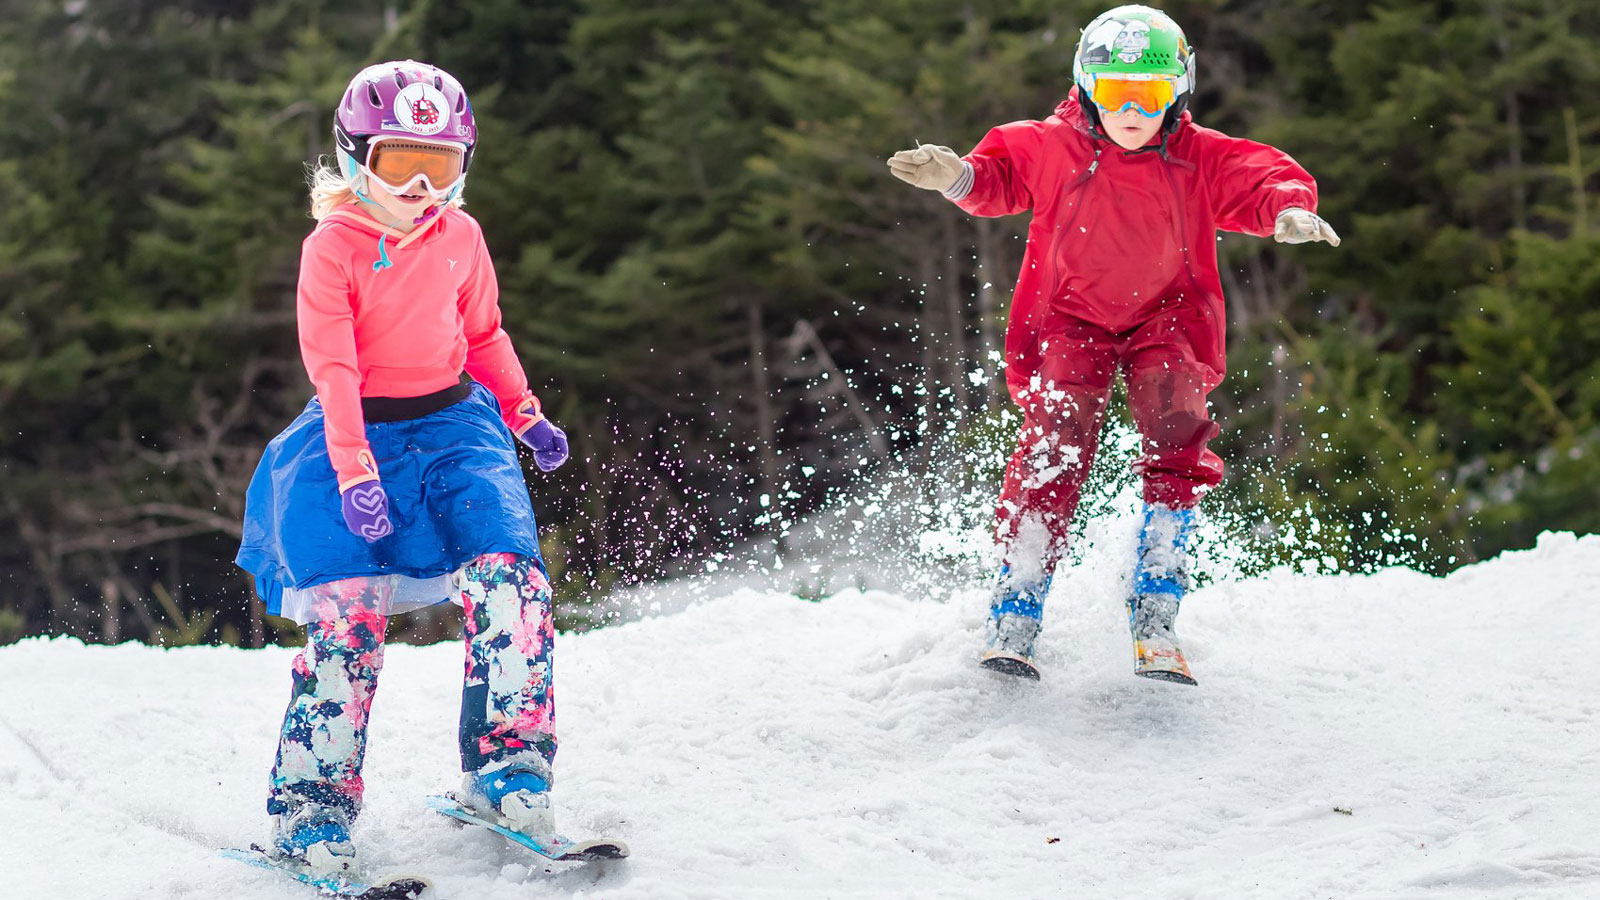 spring skiing in vermont